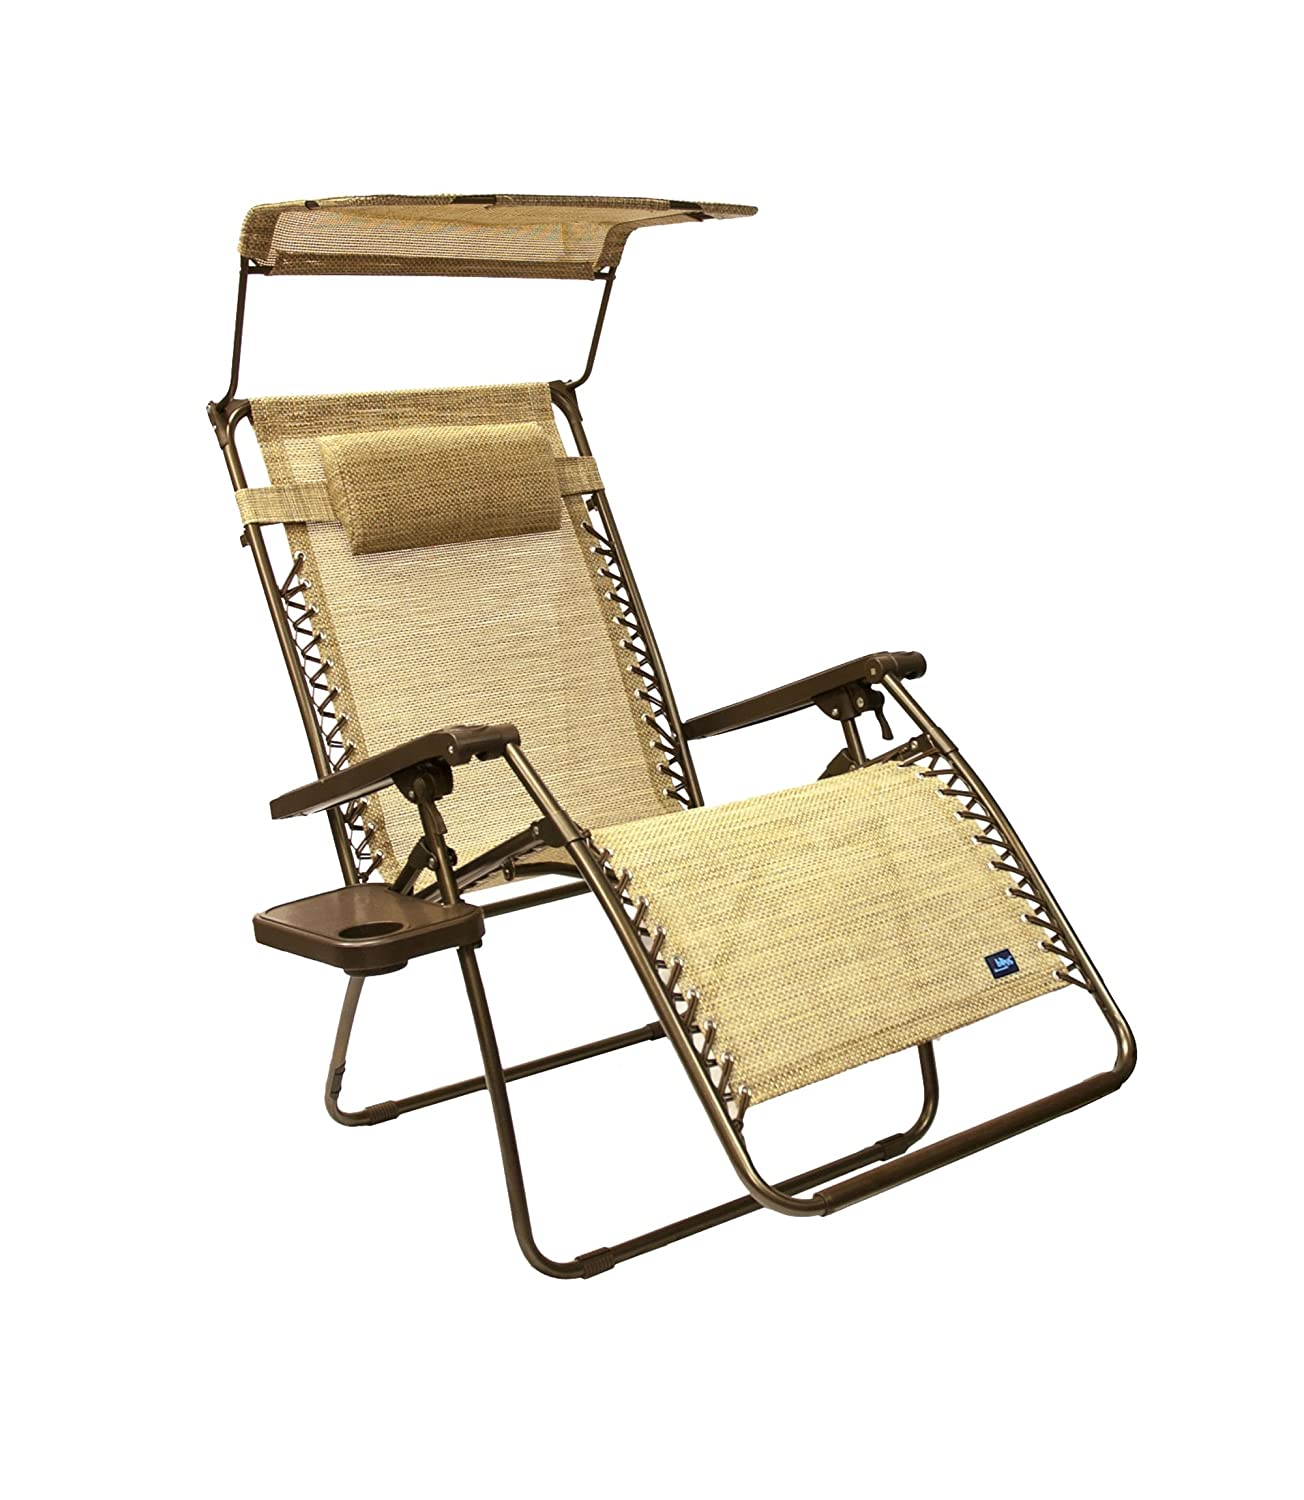 Bliss Hammocks Wide Gravity Free Lounger Chair with Pillow